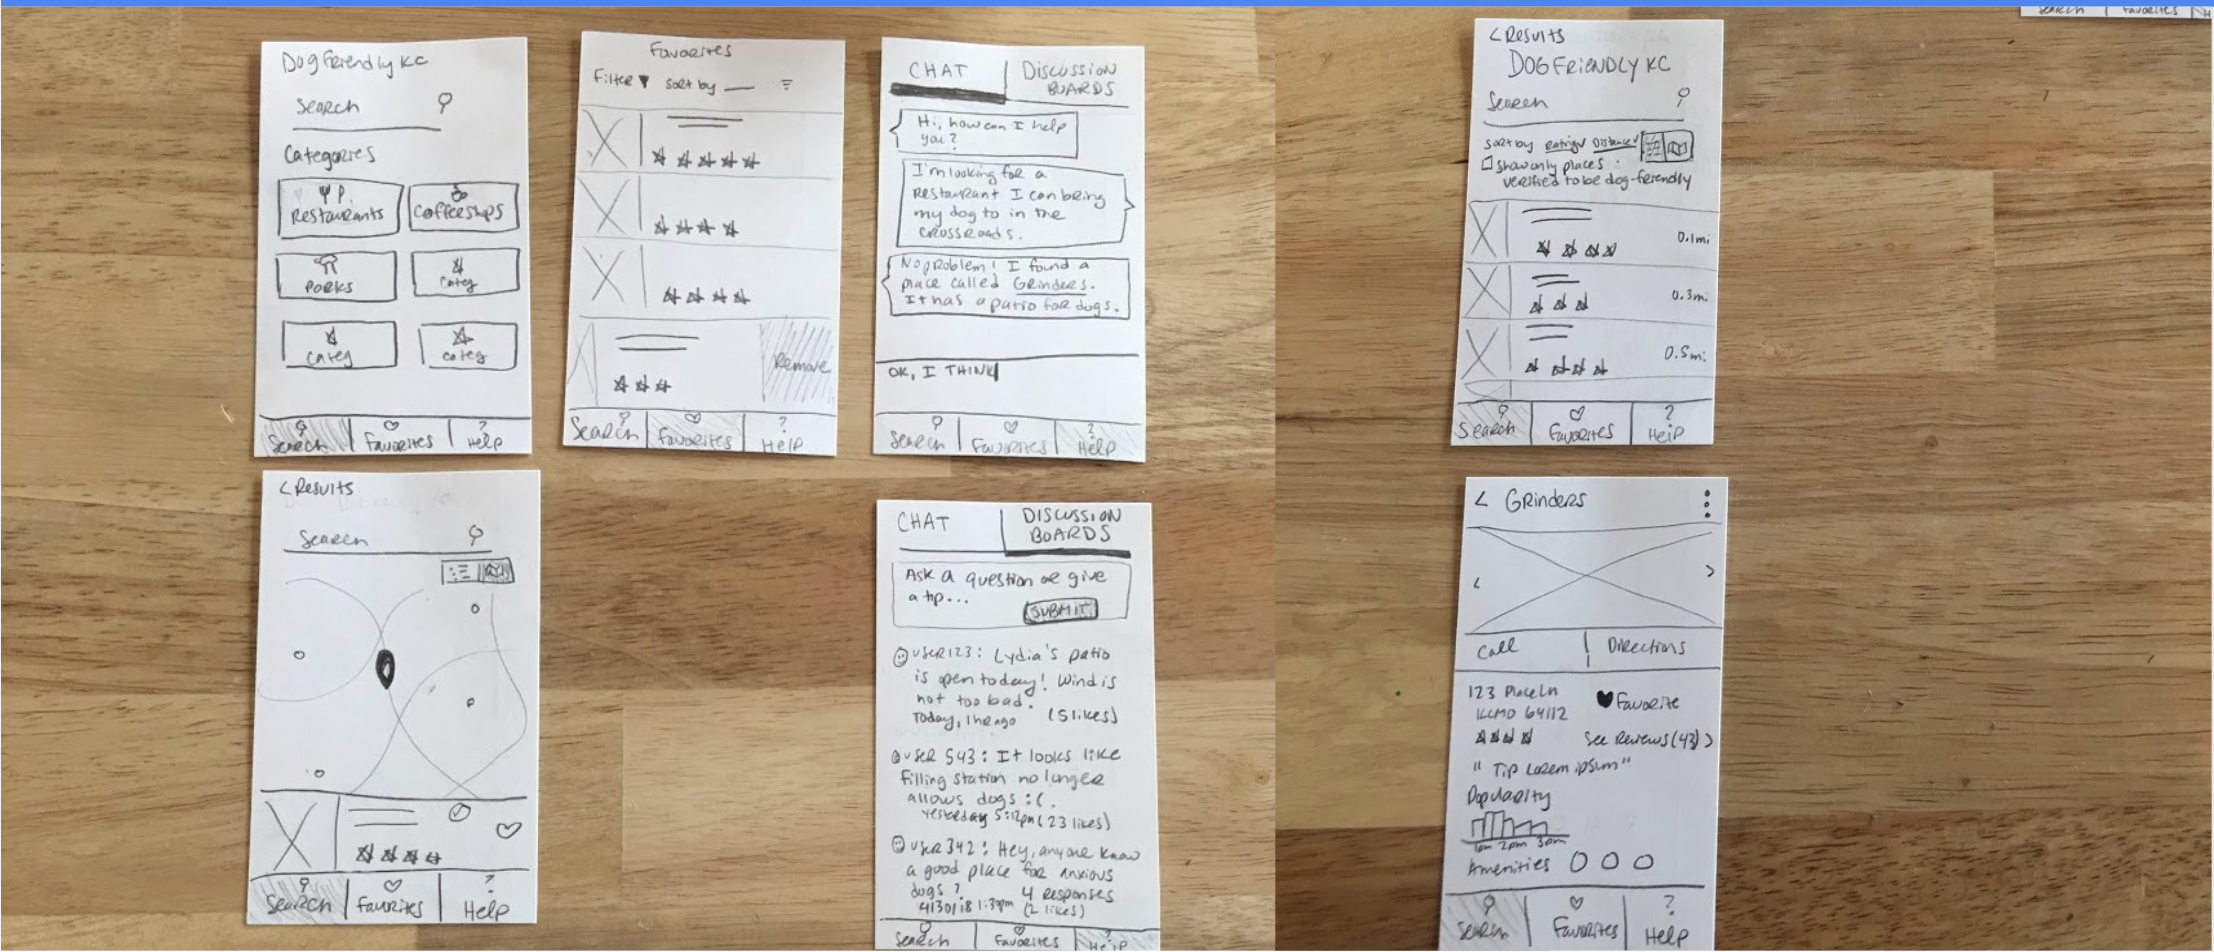 Wireframe Sketches & Paper Prototyping